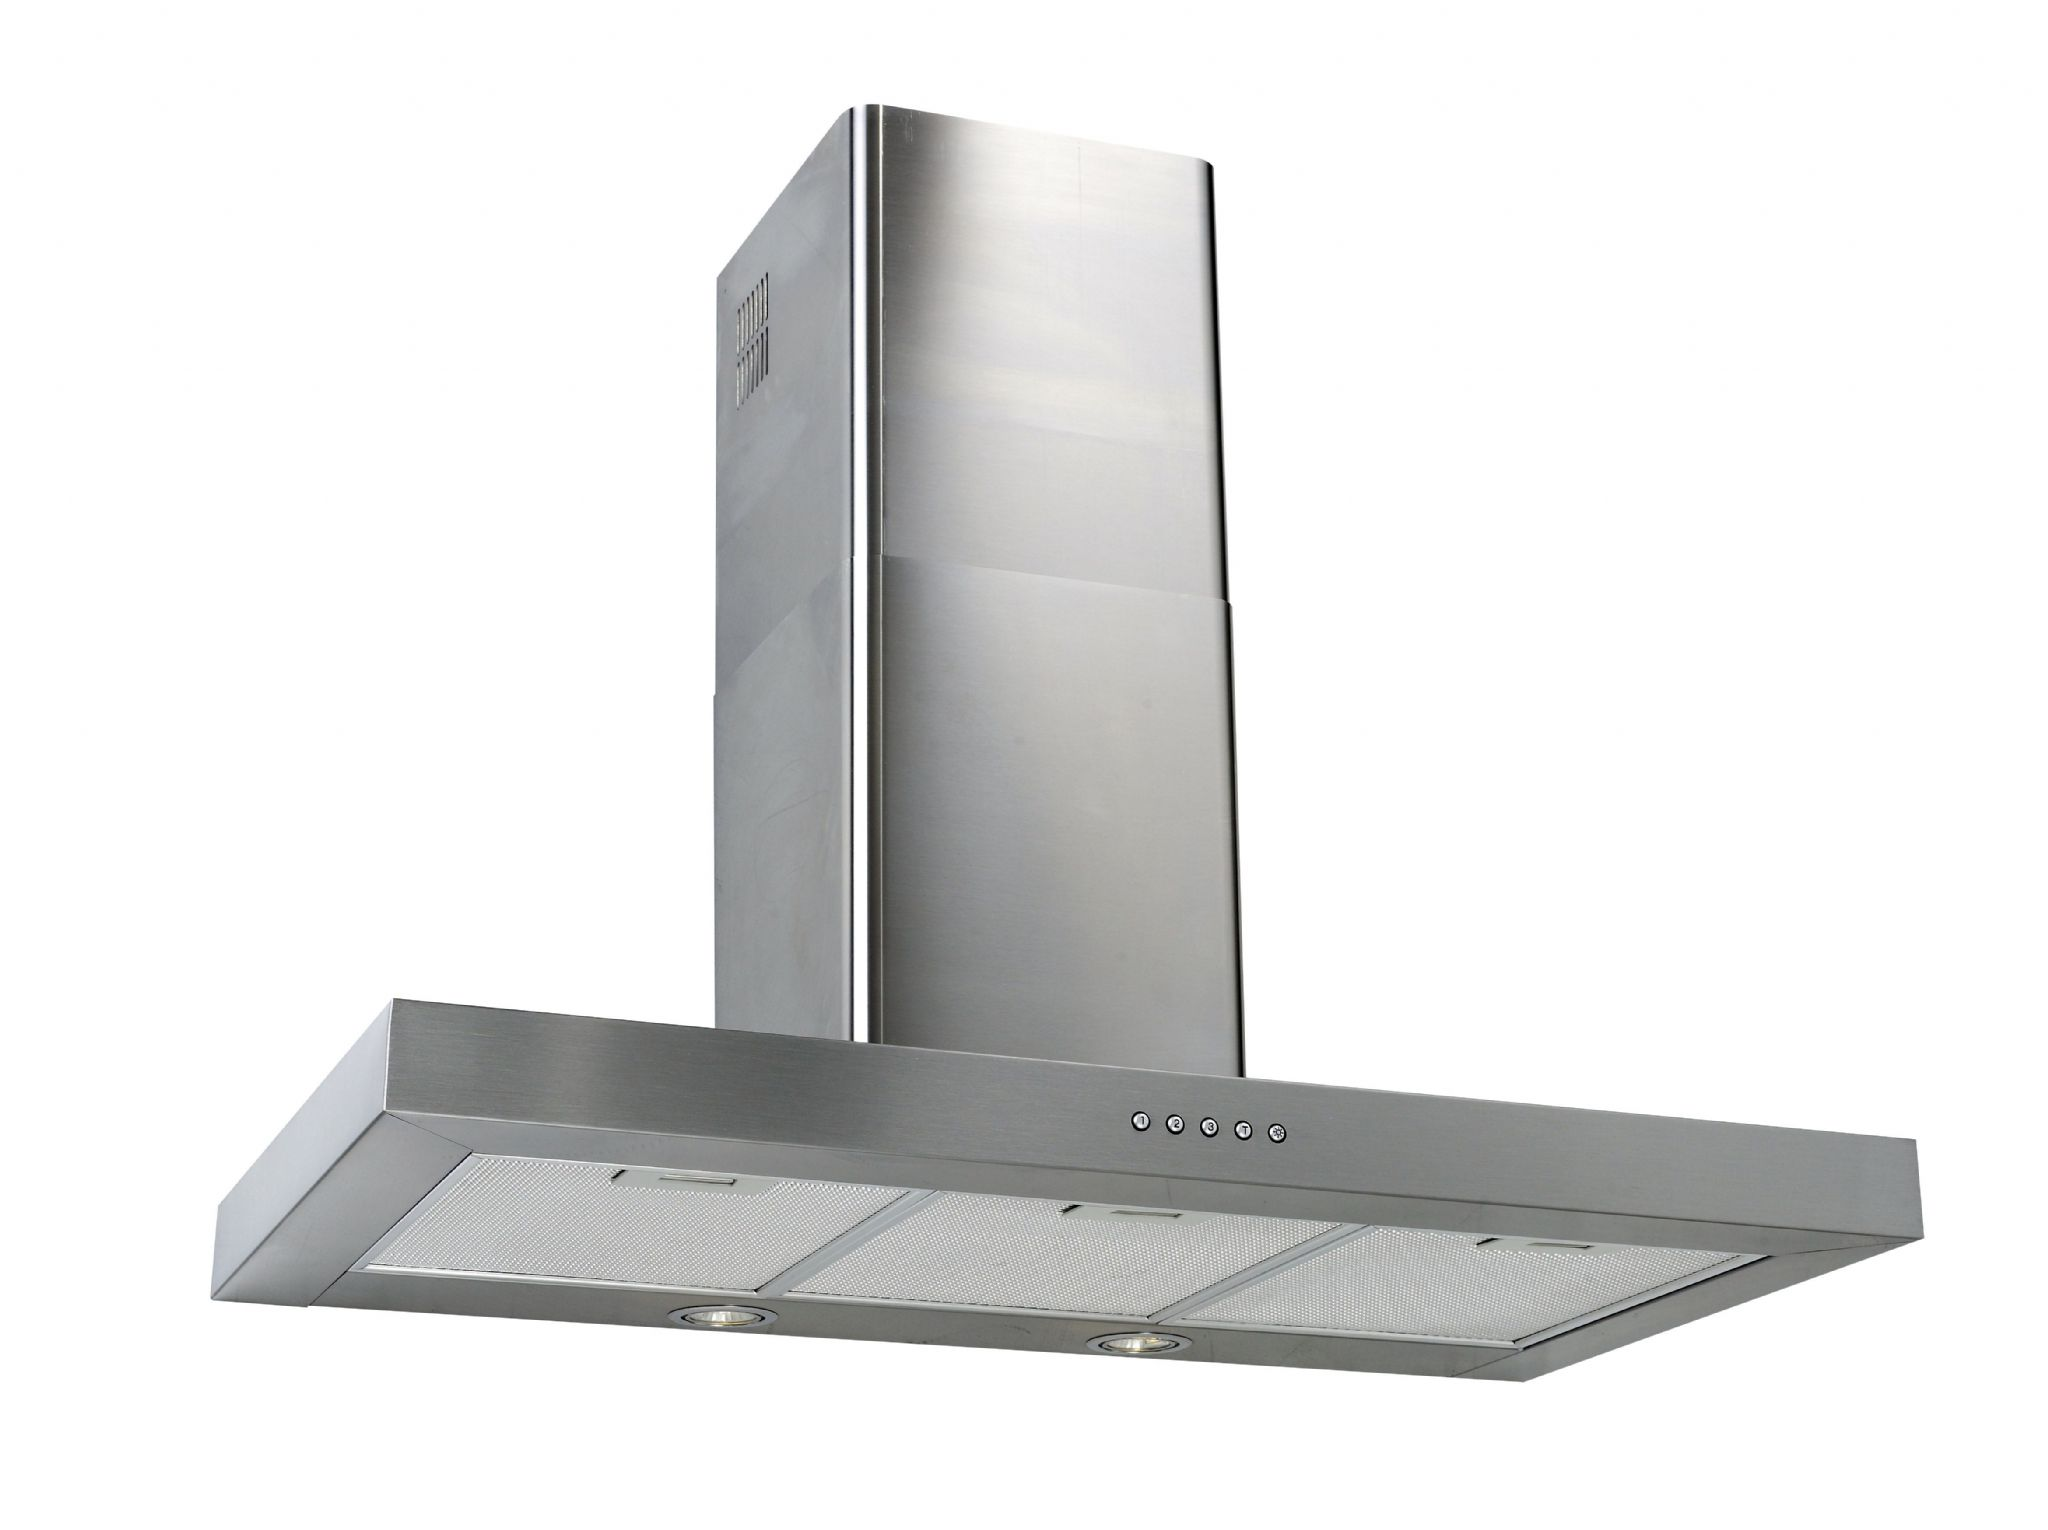 Lux Air La100fltss 100cm Cooker Hood In Stainless Steel